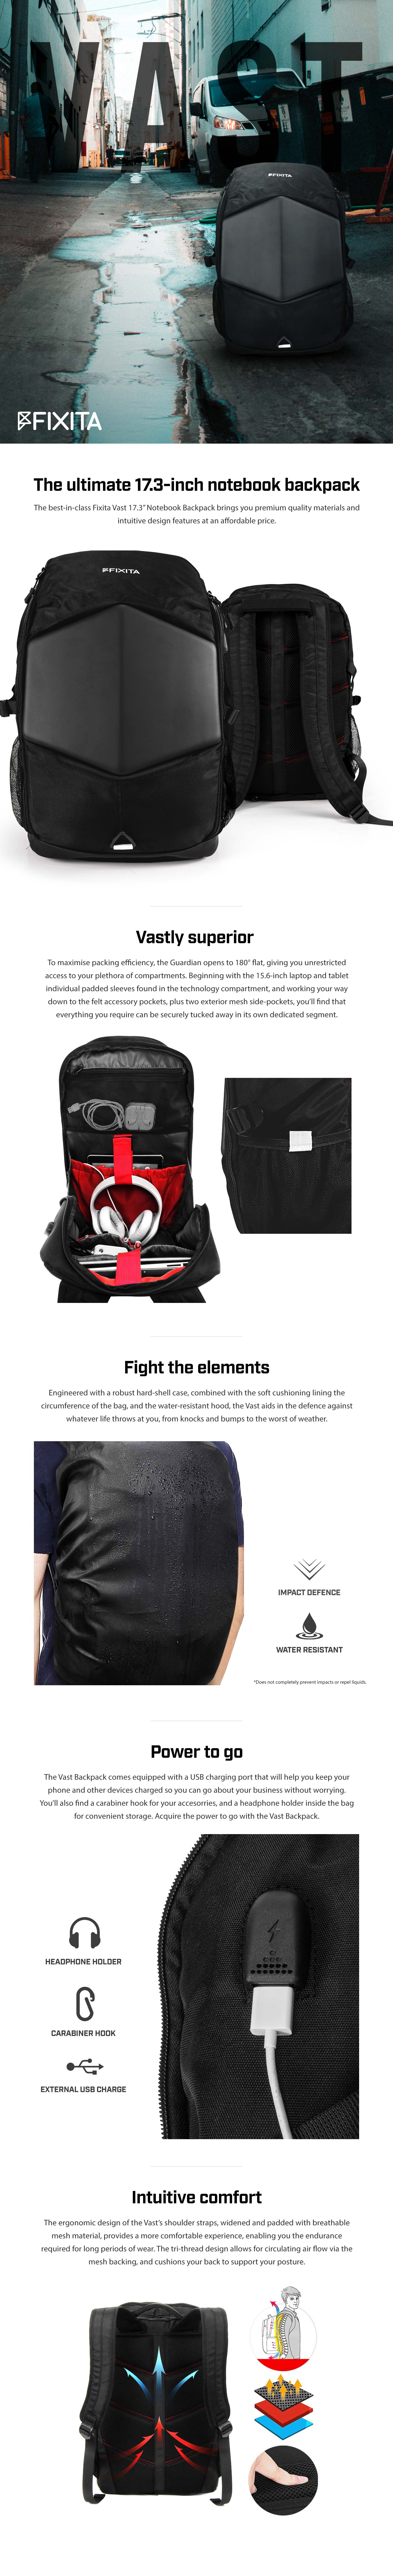 "A large marketing image providing additional information about the product Fixita Vast 17.3"" Black Notebook Backpack - Additional alt info not provided"